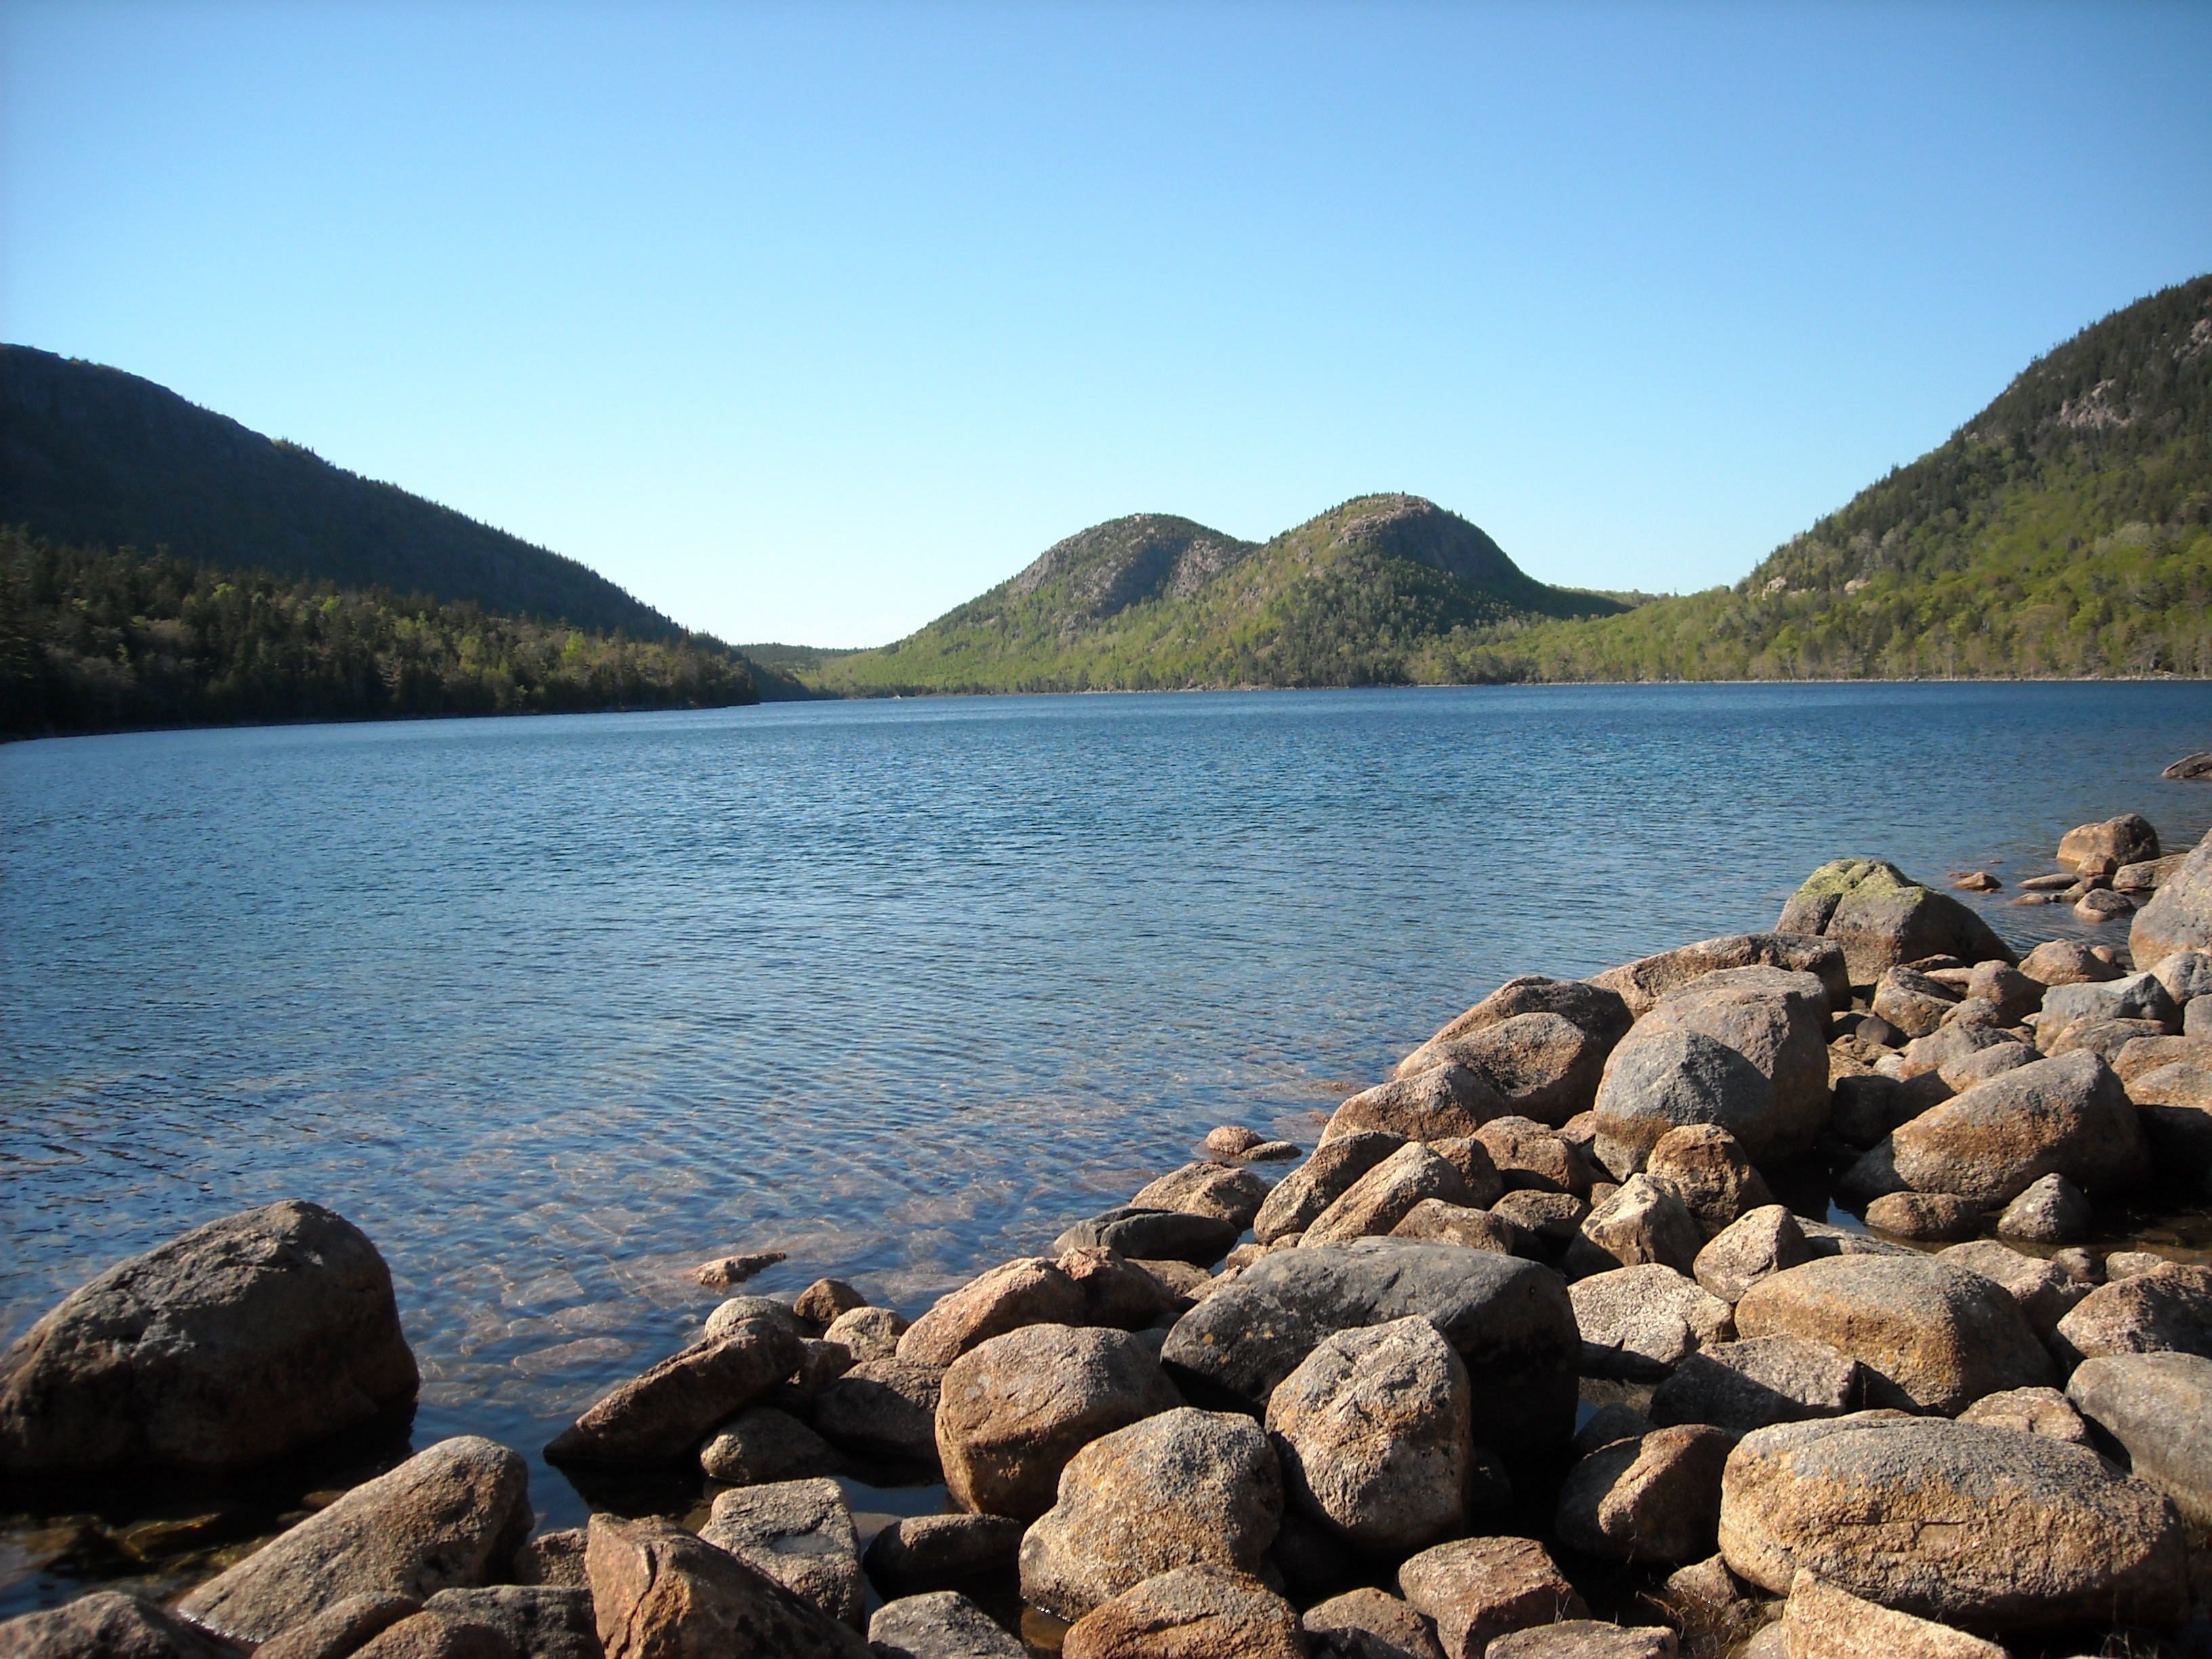 Image of Jordan Pond, Acadia National Park, Maine